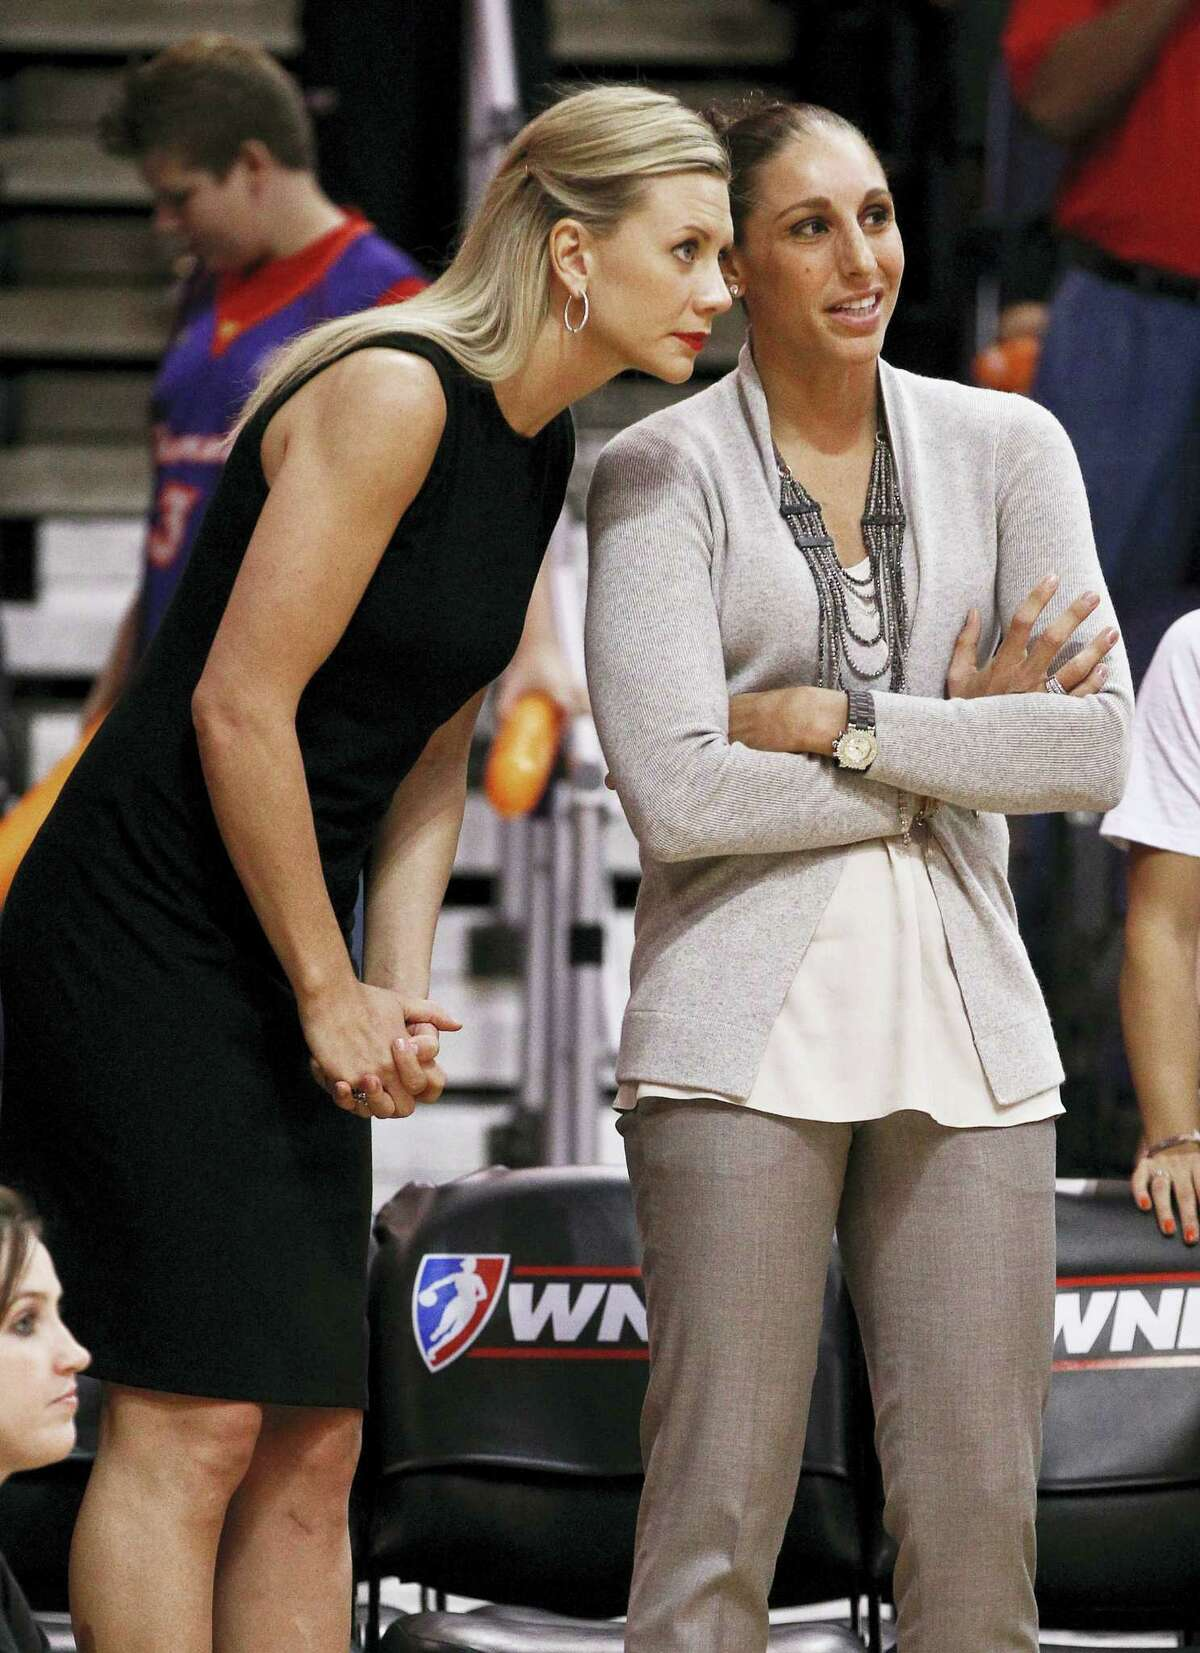 In this Sept. 12, 2012 photo, injured Phoenix Mercury players Penny Taylor, left, of Australia, and Diana Taurasi stand at the team bench during the first half of a WNBA basketball game against the Connecticut Sun, in Phoenix. Diana Taurasi has married former Phoenix Mercury teammate Penny Taylor, then played in the team's season opener less than 24 hours later. The 34-year-old Taurasi has played for the Mercury since 2004, helping the team win three titles. She also helped the U.S. win four consecutive Olympic gold medals. The couple married May 13, 2017.